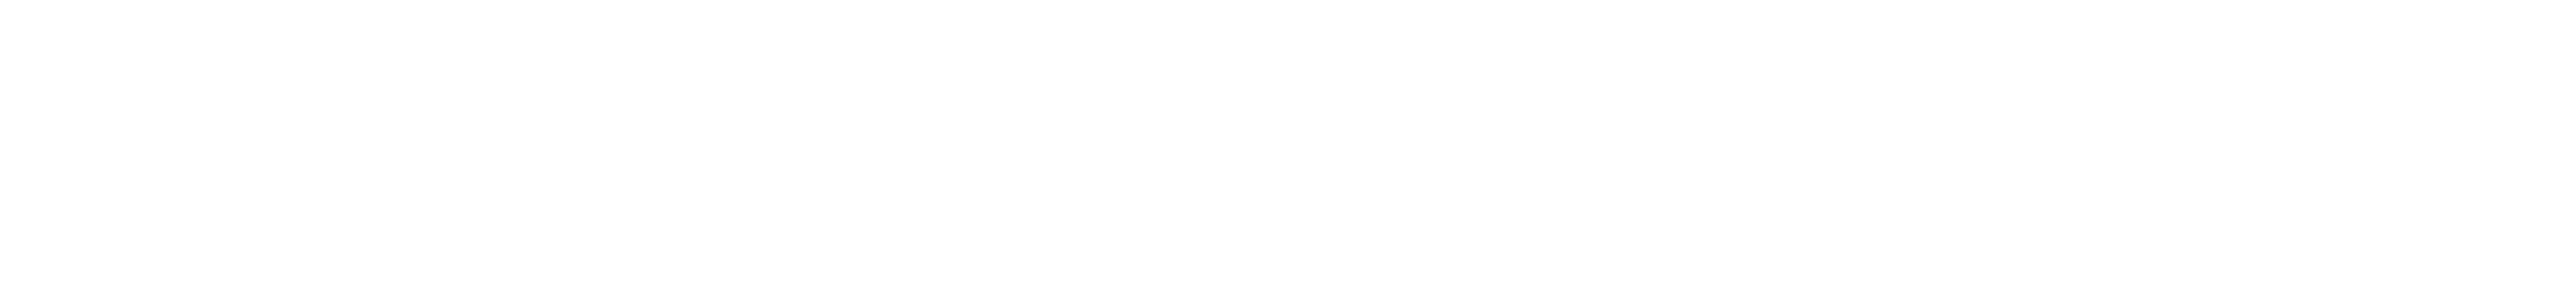 Lace Png - View full size ?